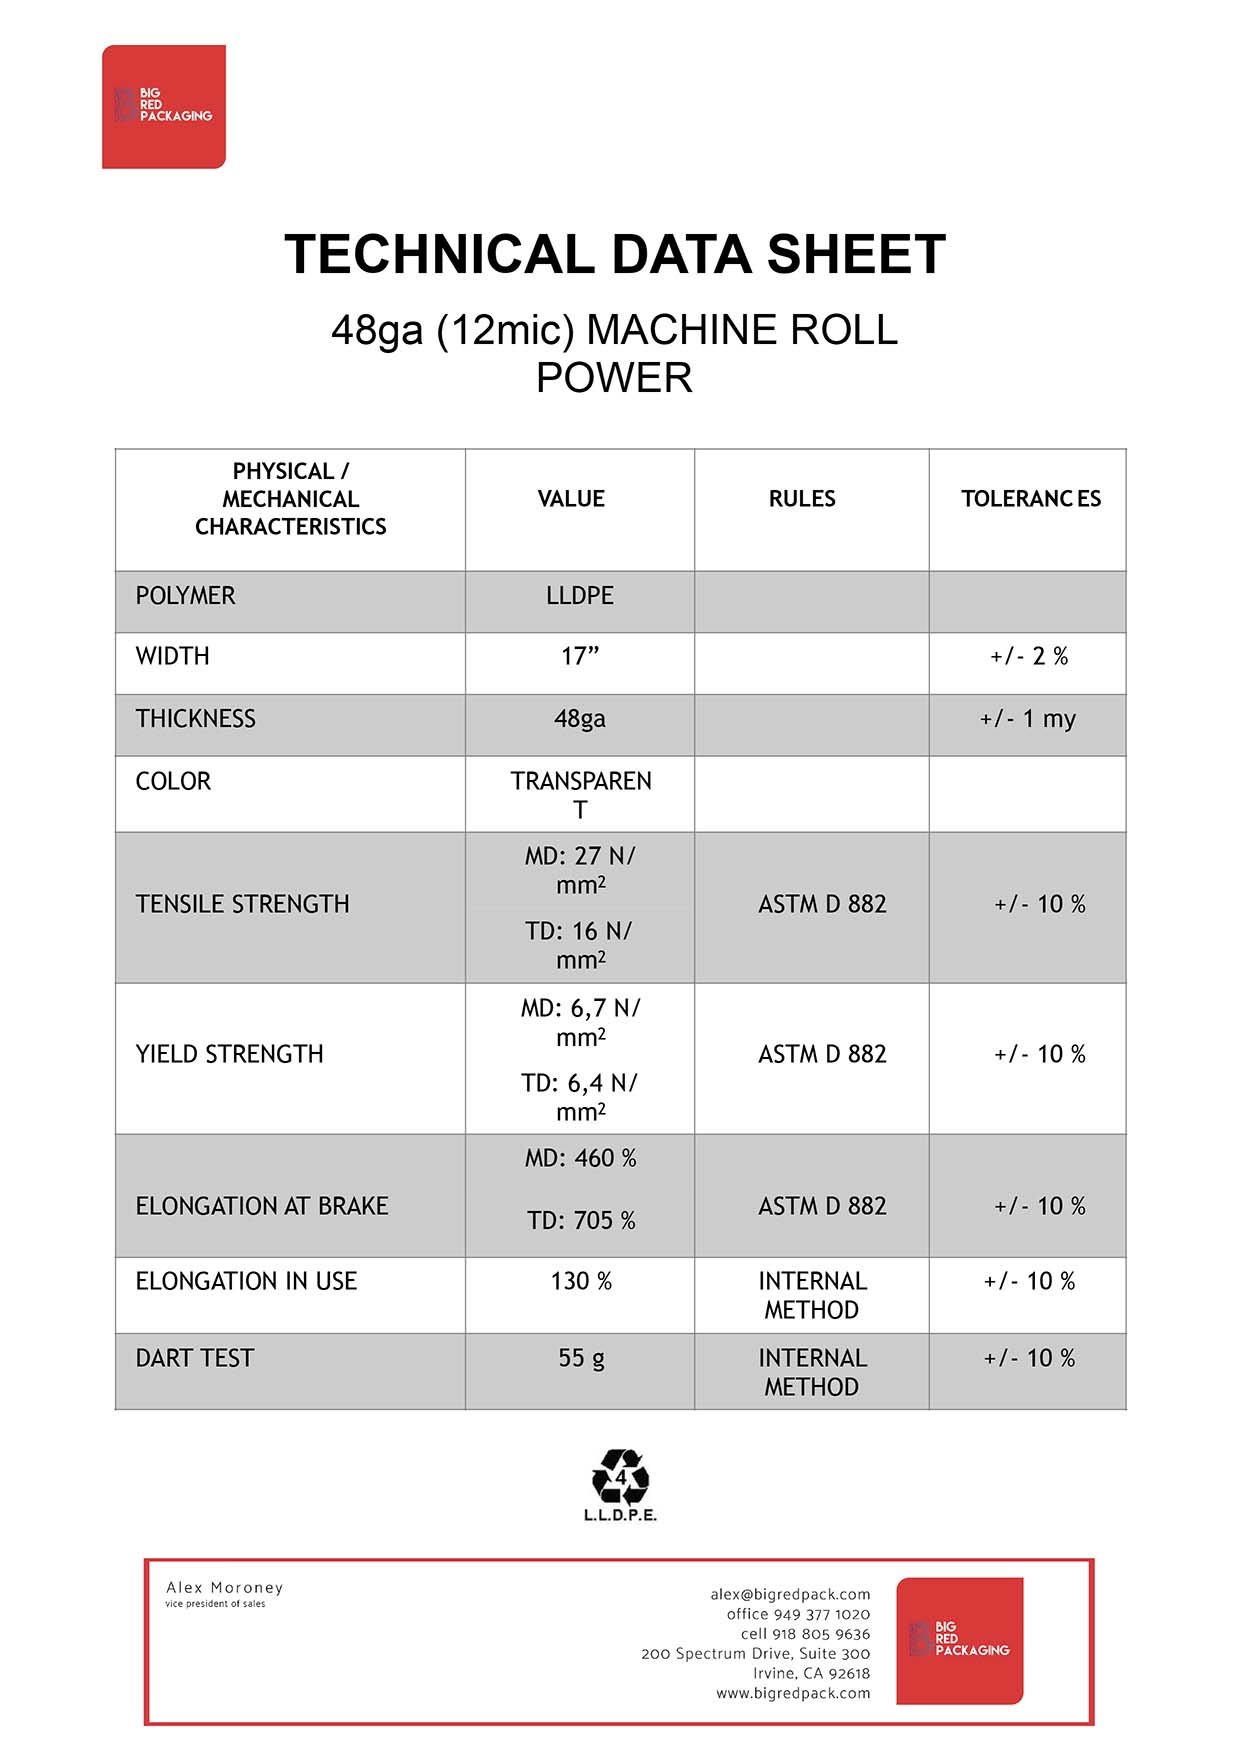 TDS MACHINE ROLL POWER - 12 my (48ga).jpg